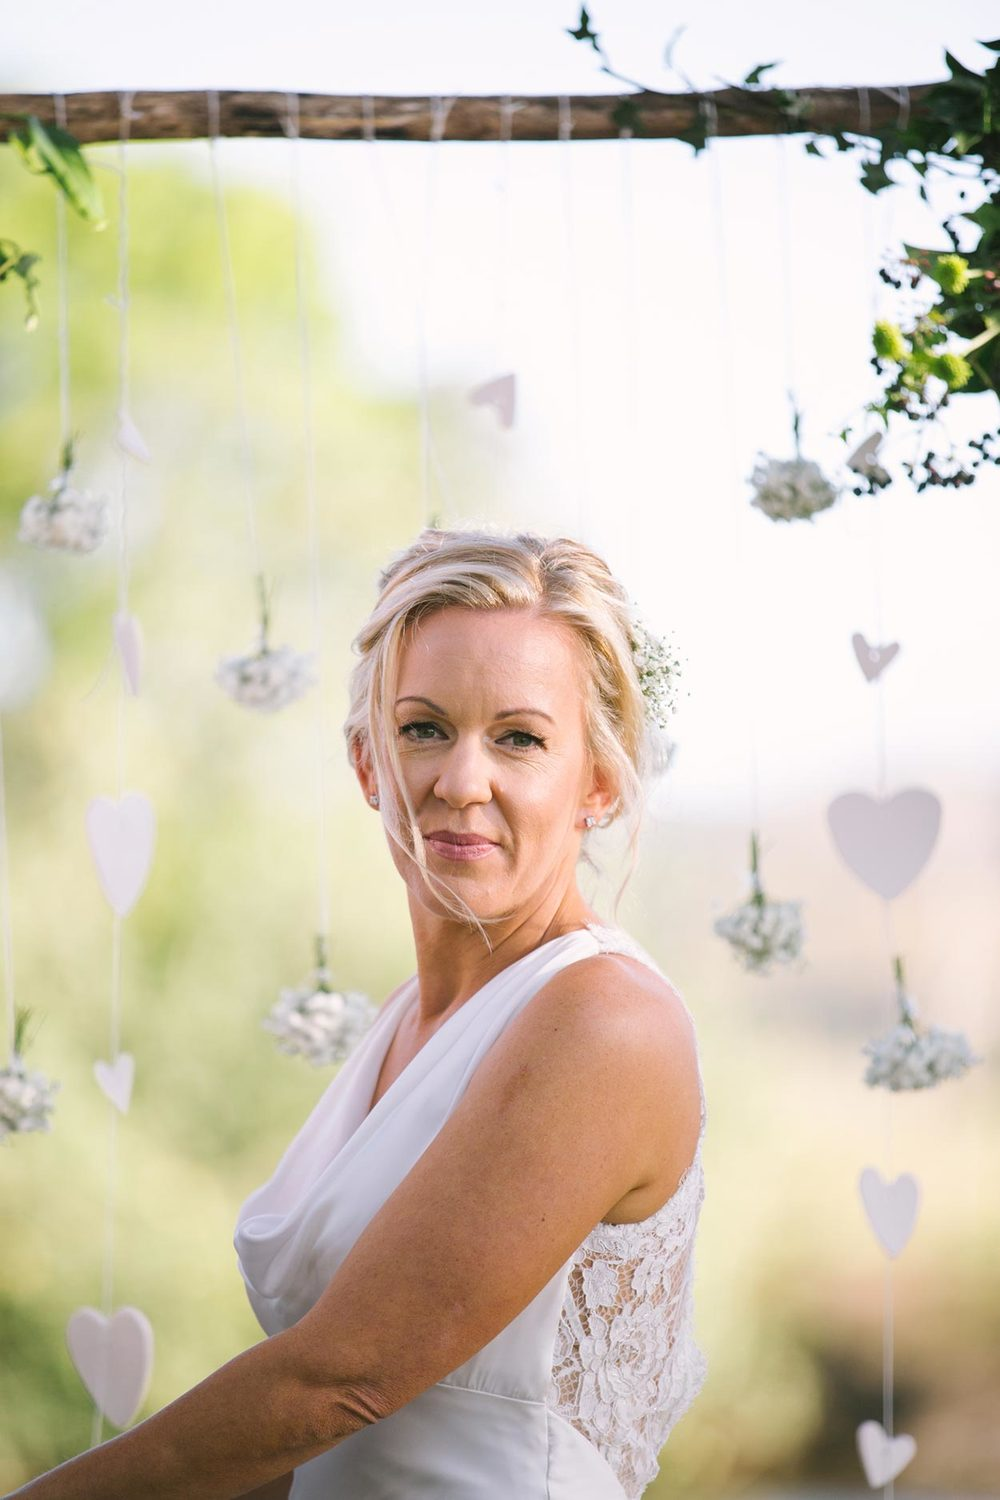 Natural Style, Queensland Elopement - Flaxton, Sunshine Coast Hinterland Wedding Destination Photographer